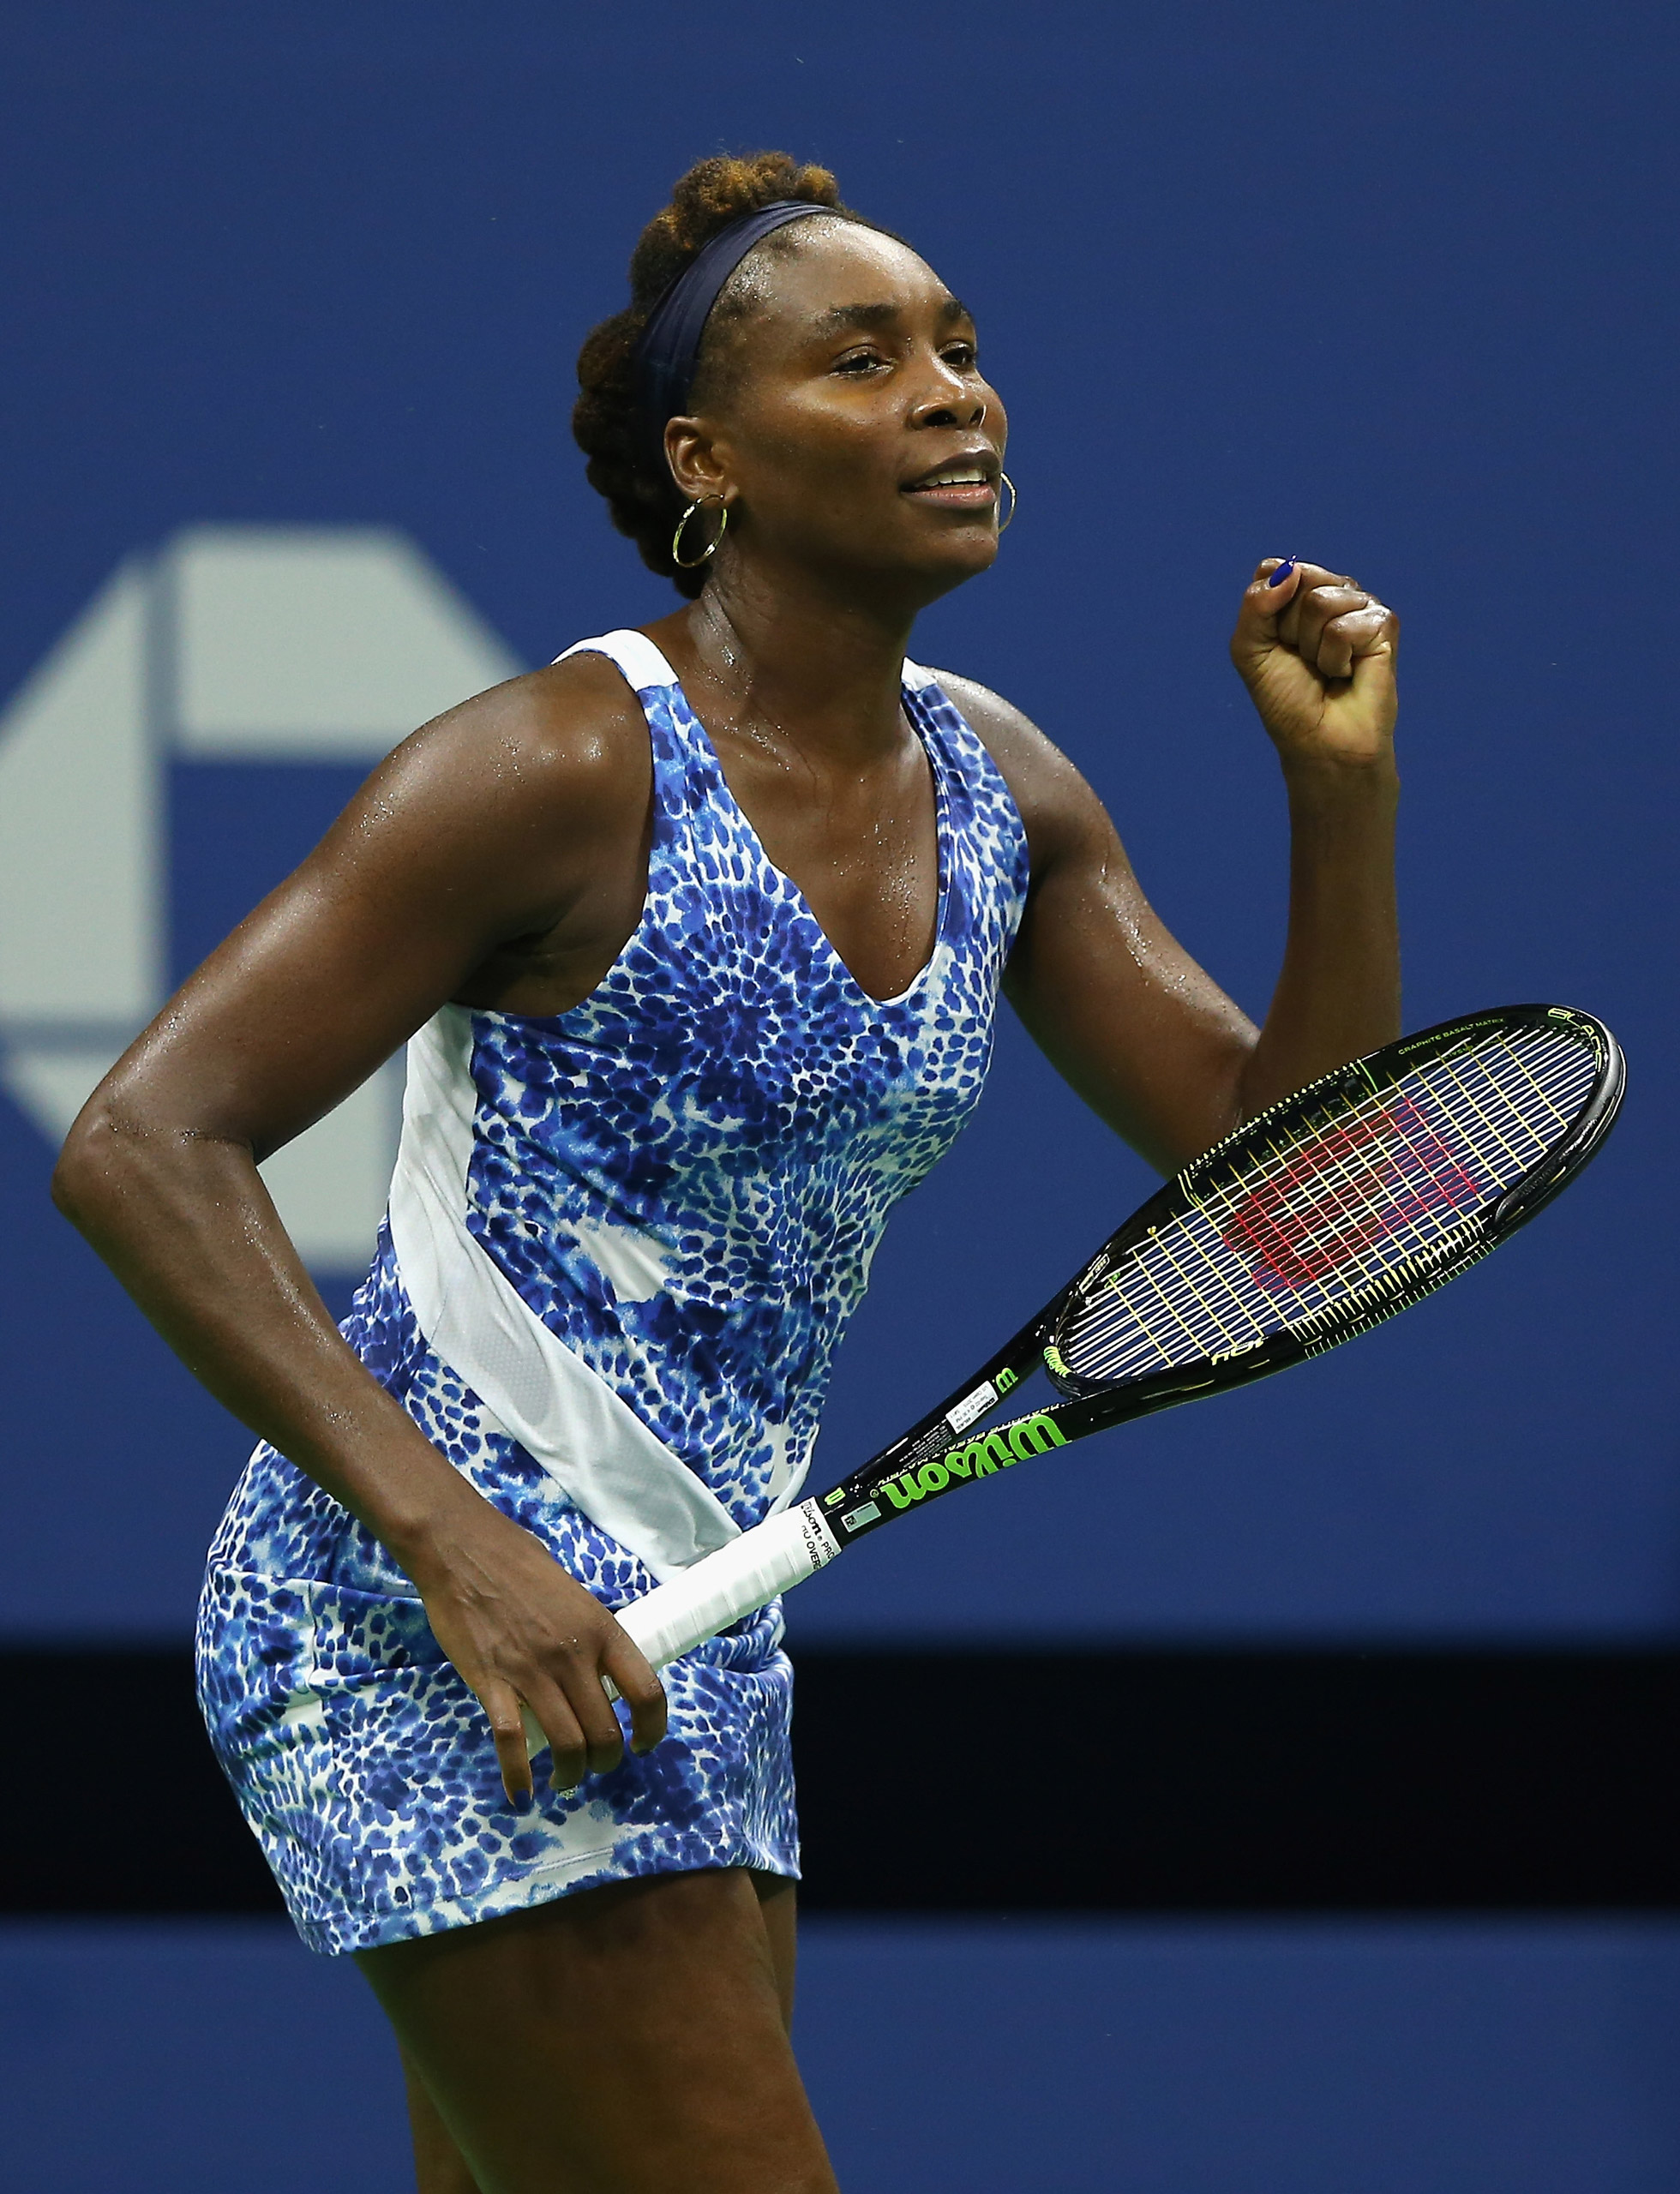 Venus Williams of the USA celebrates her match win over Irina Falconi of the USA on Sept. 2, 2015.